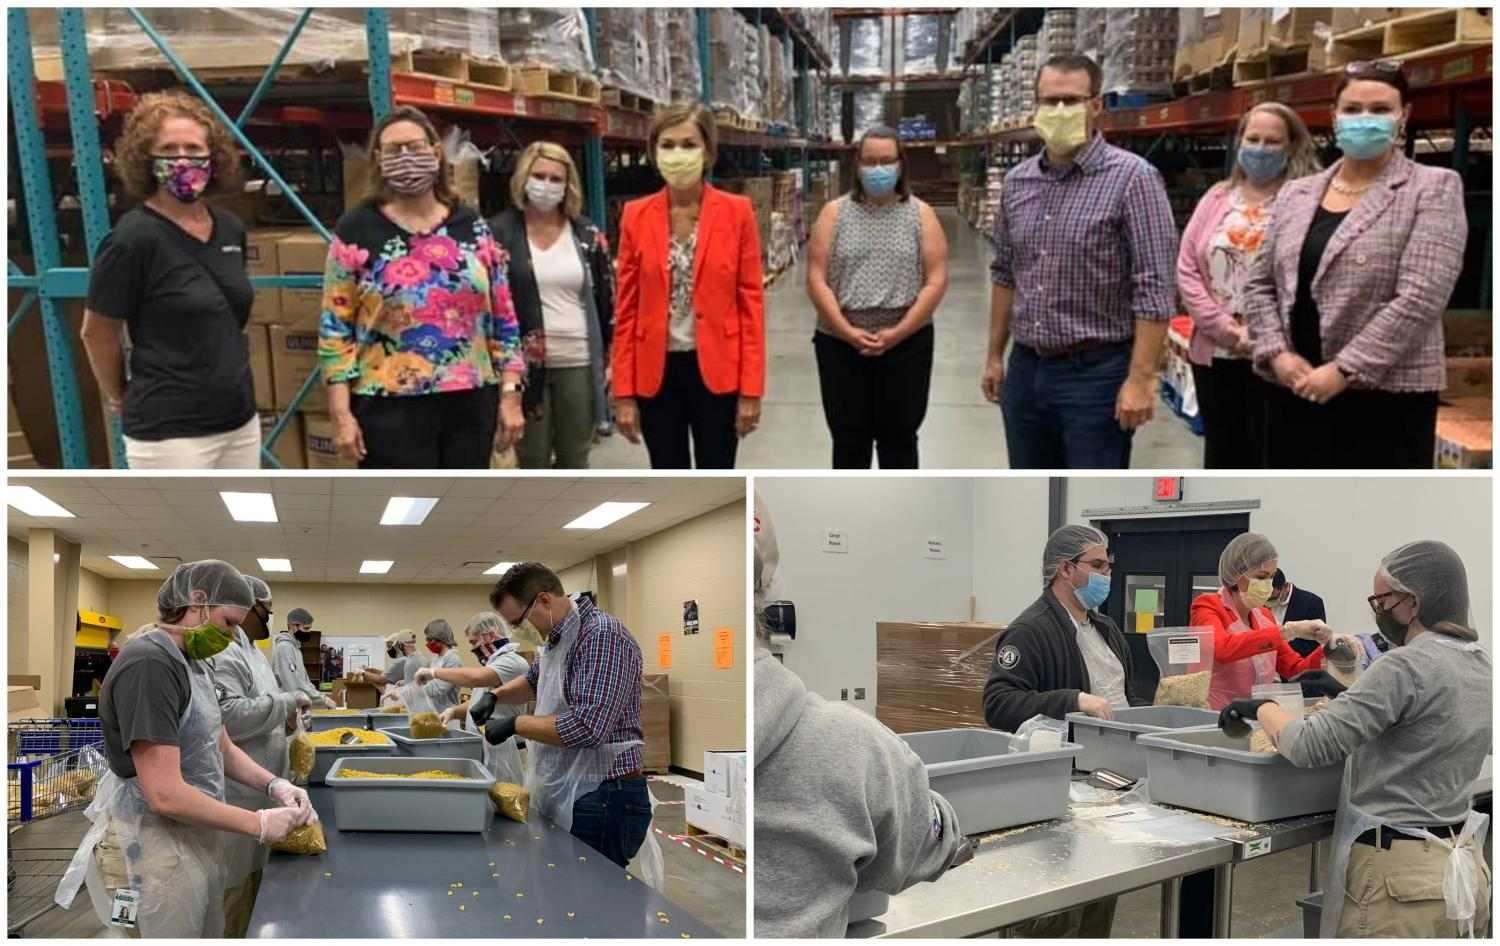 Governor Reynolds served alongside AmeriCorps members, learning about new initiatives in Iowa to address rising food insecurity as a result of COVID-19 and the economic recession.